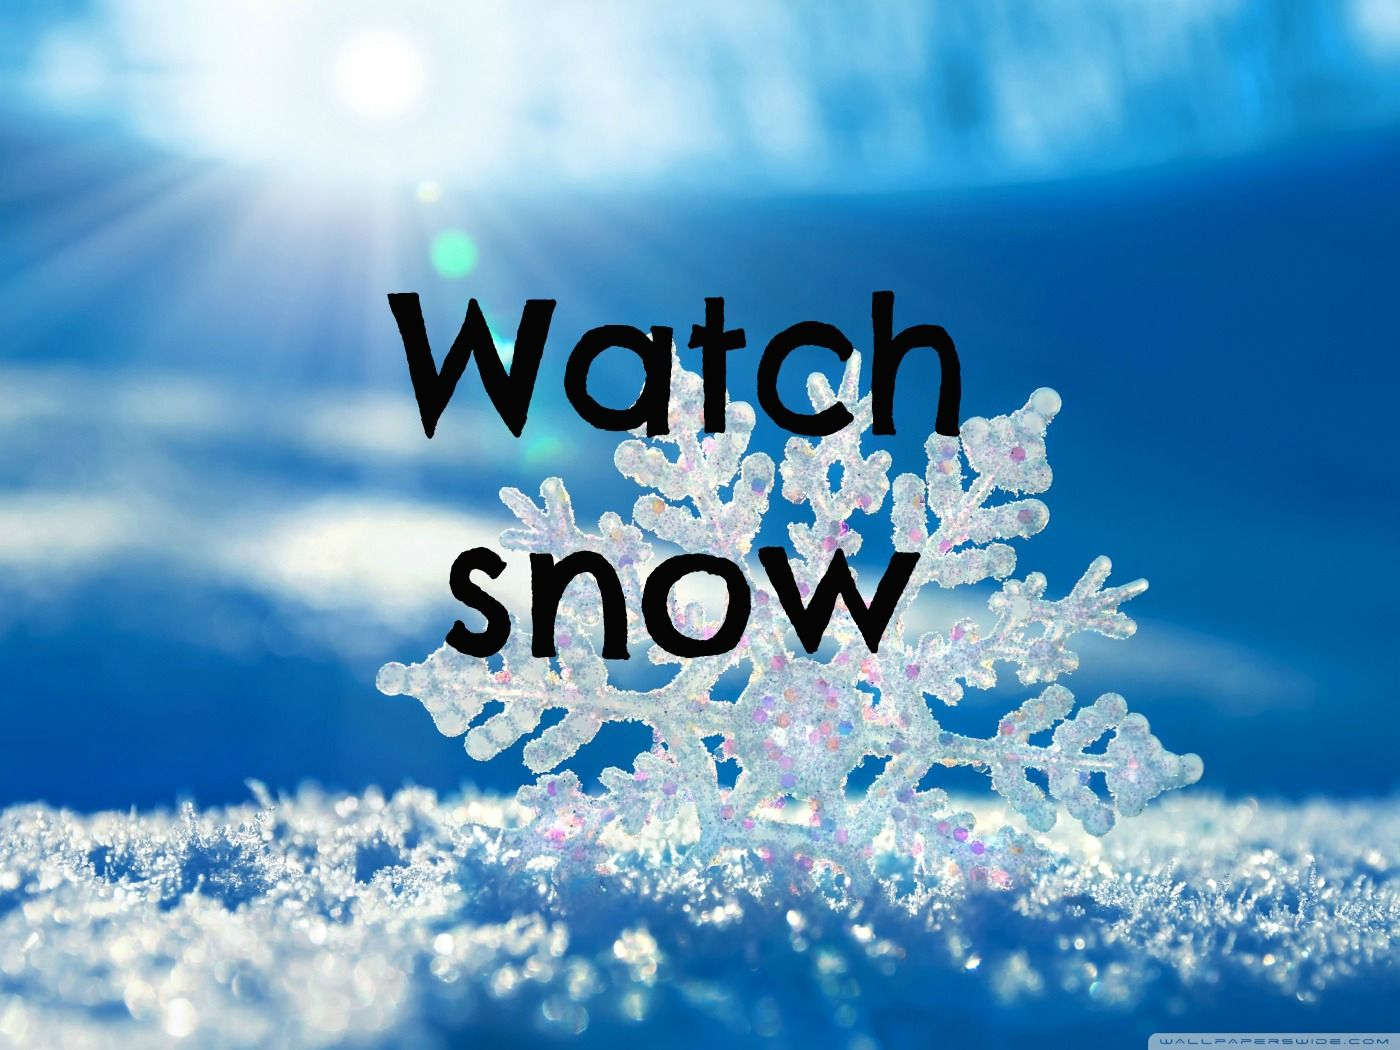 Snowflake Love Quotes Anywhere If I Watch Snow I Will Be Happy  For My Life